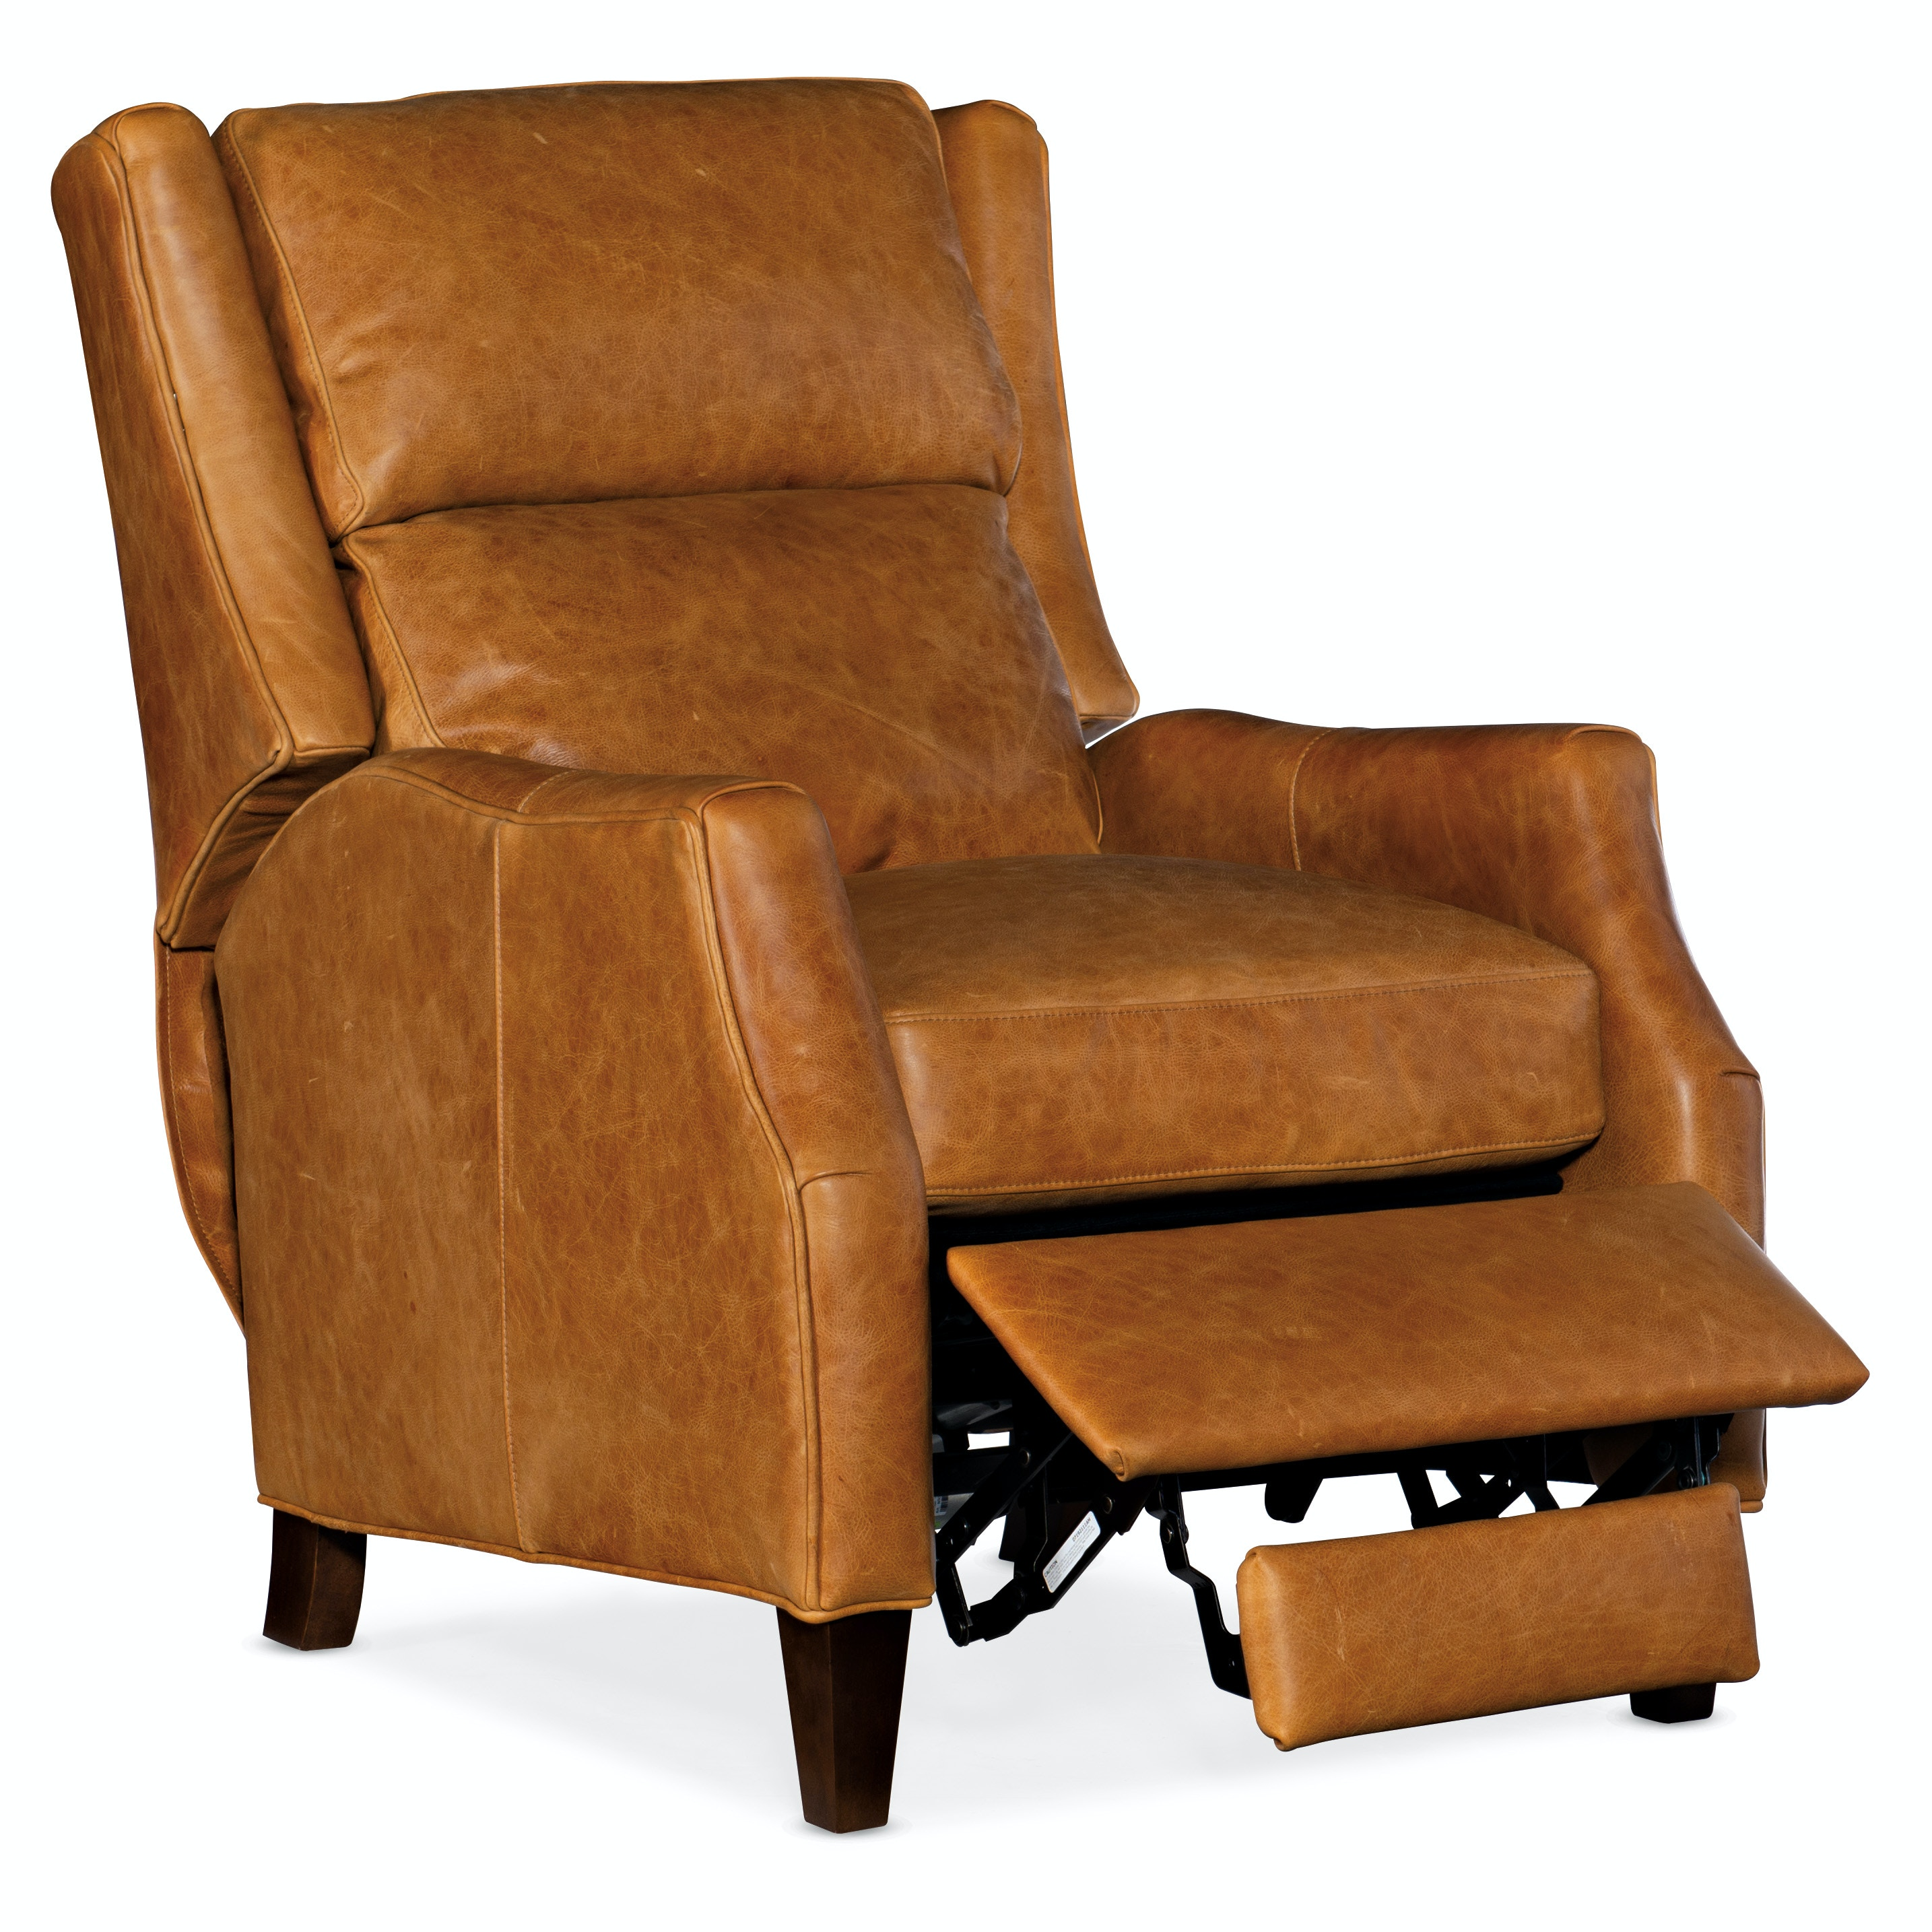 Bradington Young Living Room Thomas 3 Way Lounger W Articulating Hr 3156 Bradington Young